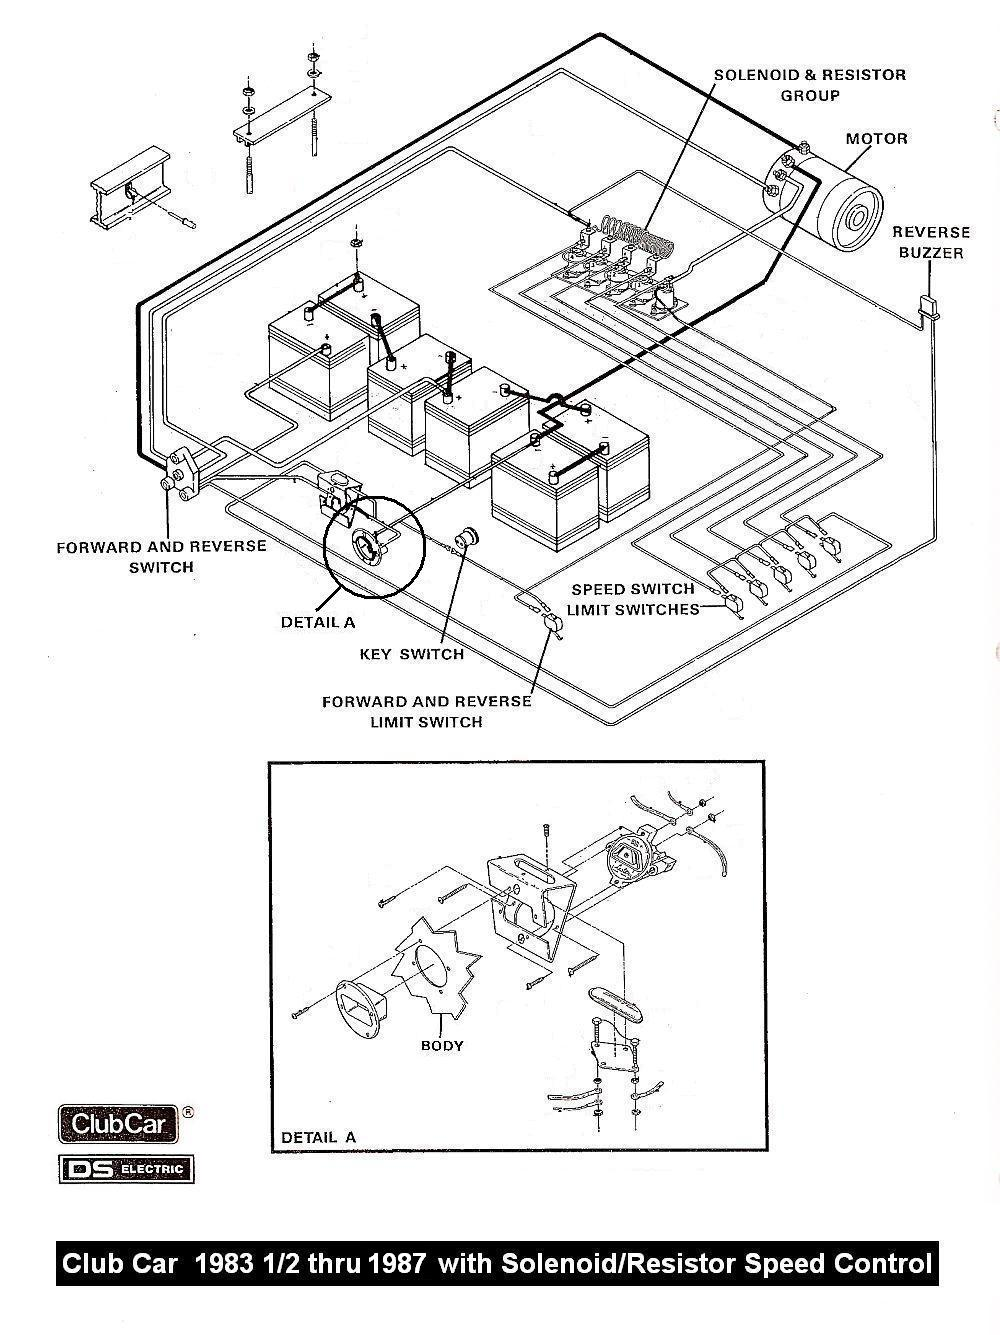 Auto Wiring Diagrams Book | Wiring Liry on 36 volt club car diagram, 2000 club car brochure, 2000 club car accessories, club car golf cart parts diagram, gas club car parts diagram, 1988 club car parts diagram, 2000 club car specifications, 2000 club car tires, club car electrical diagram, 98 club car parts diagram, 2000 club car golf cart, club car carryall parts diagram, 2000 club car body, 2007 club car parts diagram, 2000 club cart golf cart, club car schematic diagram, club car electric motor diagram,